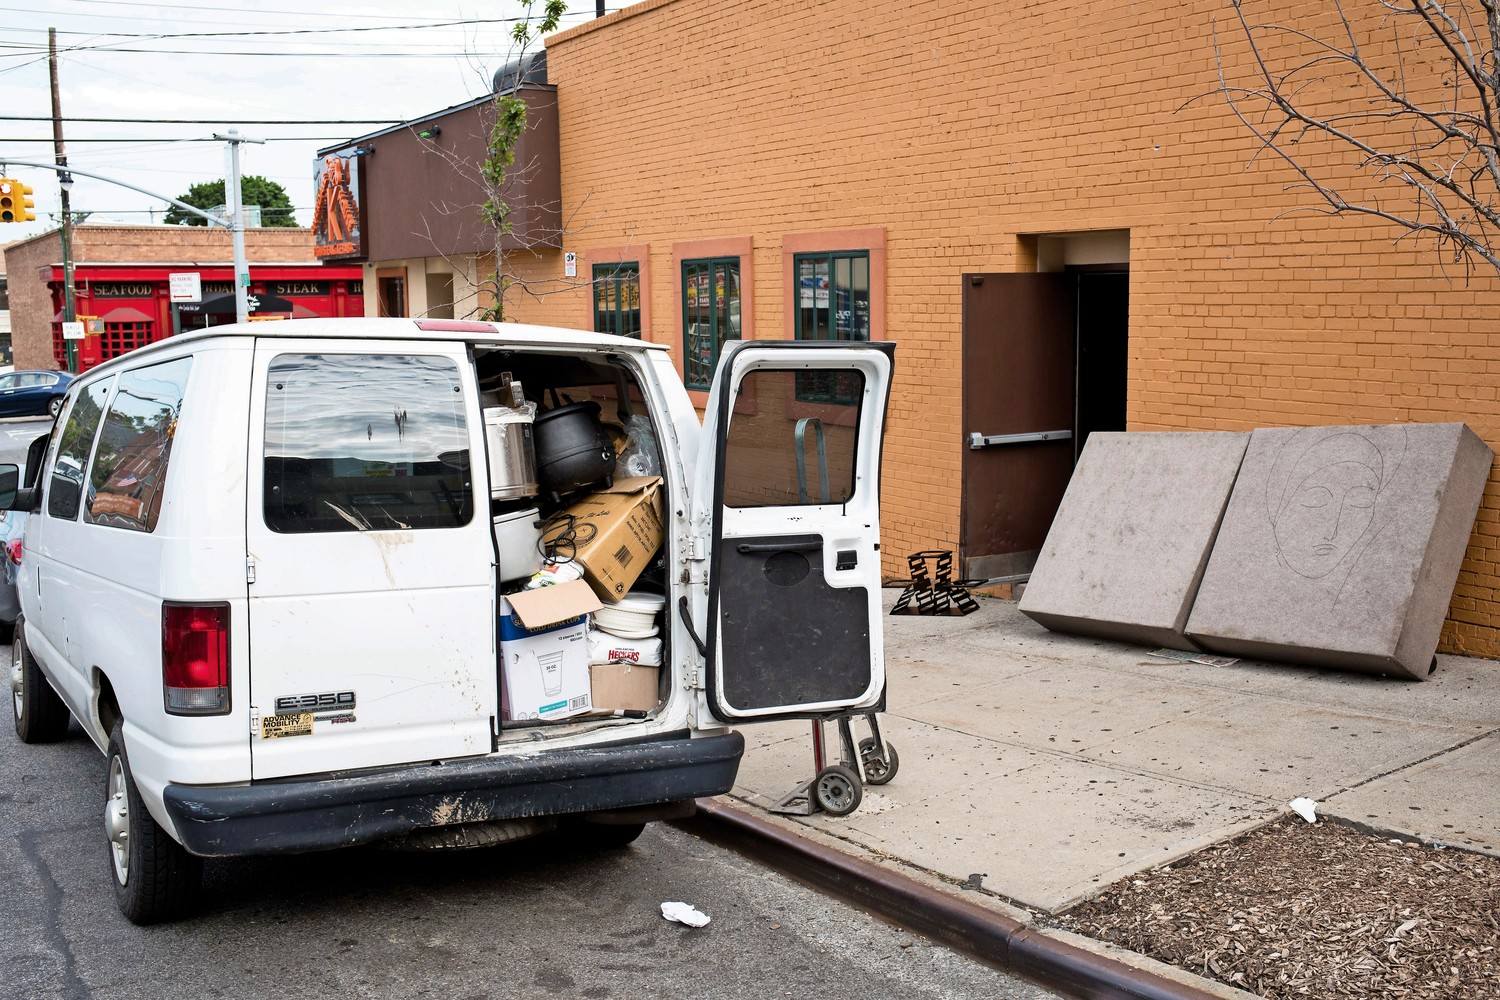 A white van packed with appliances and foodstuffs sits outside of K Grill House, which closed down for unspecified reasons.